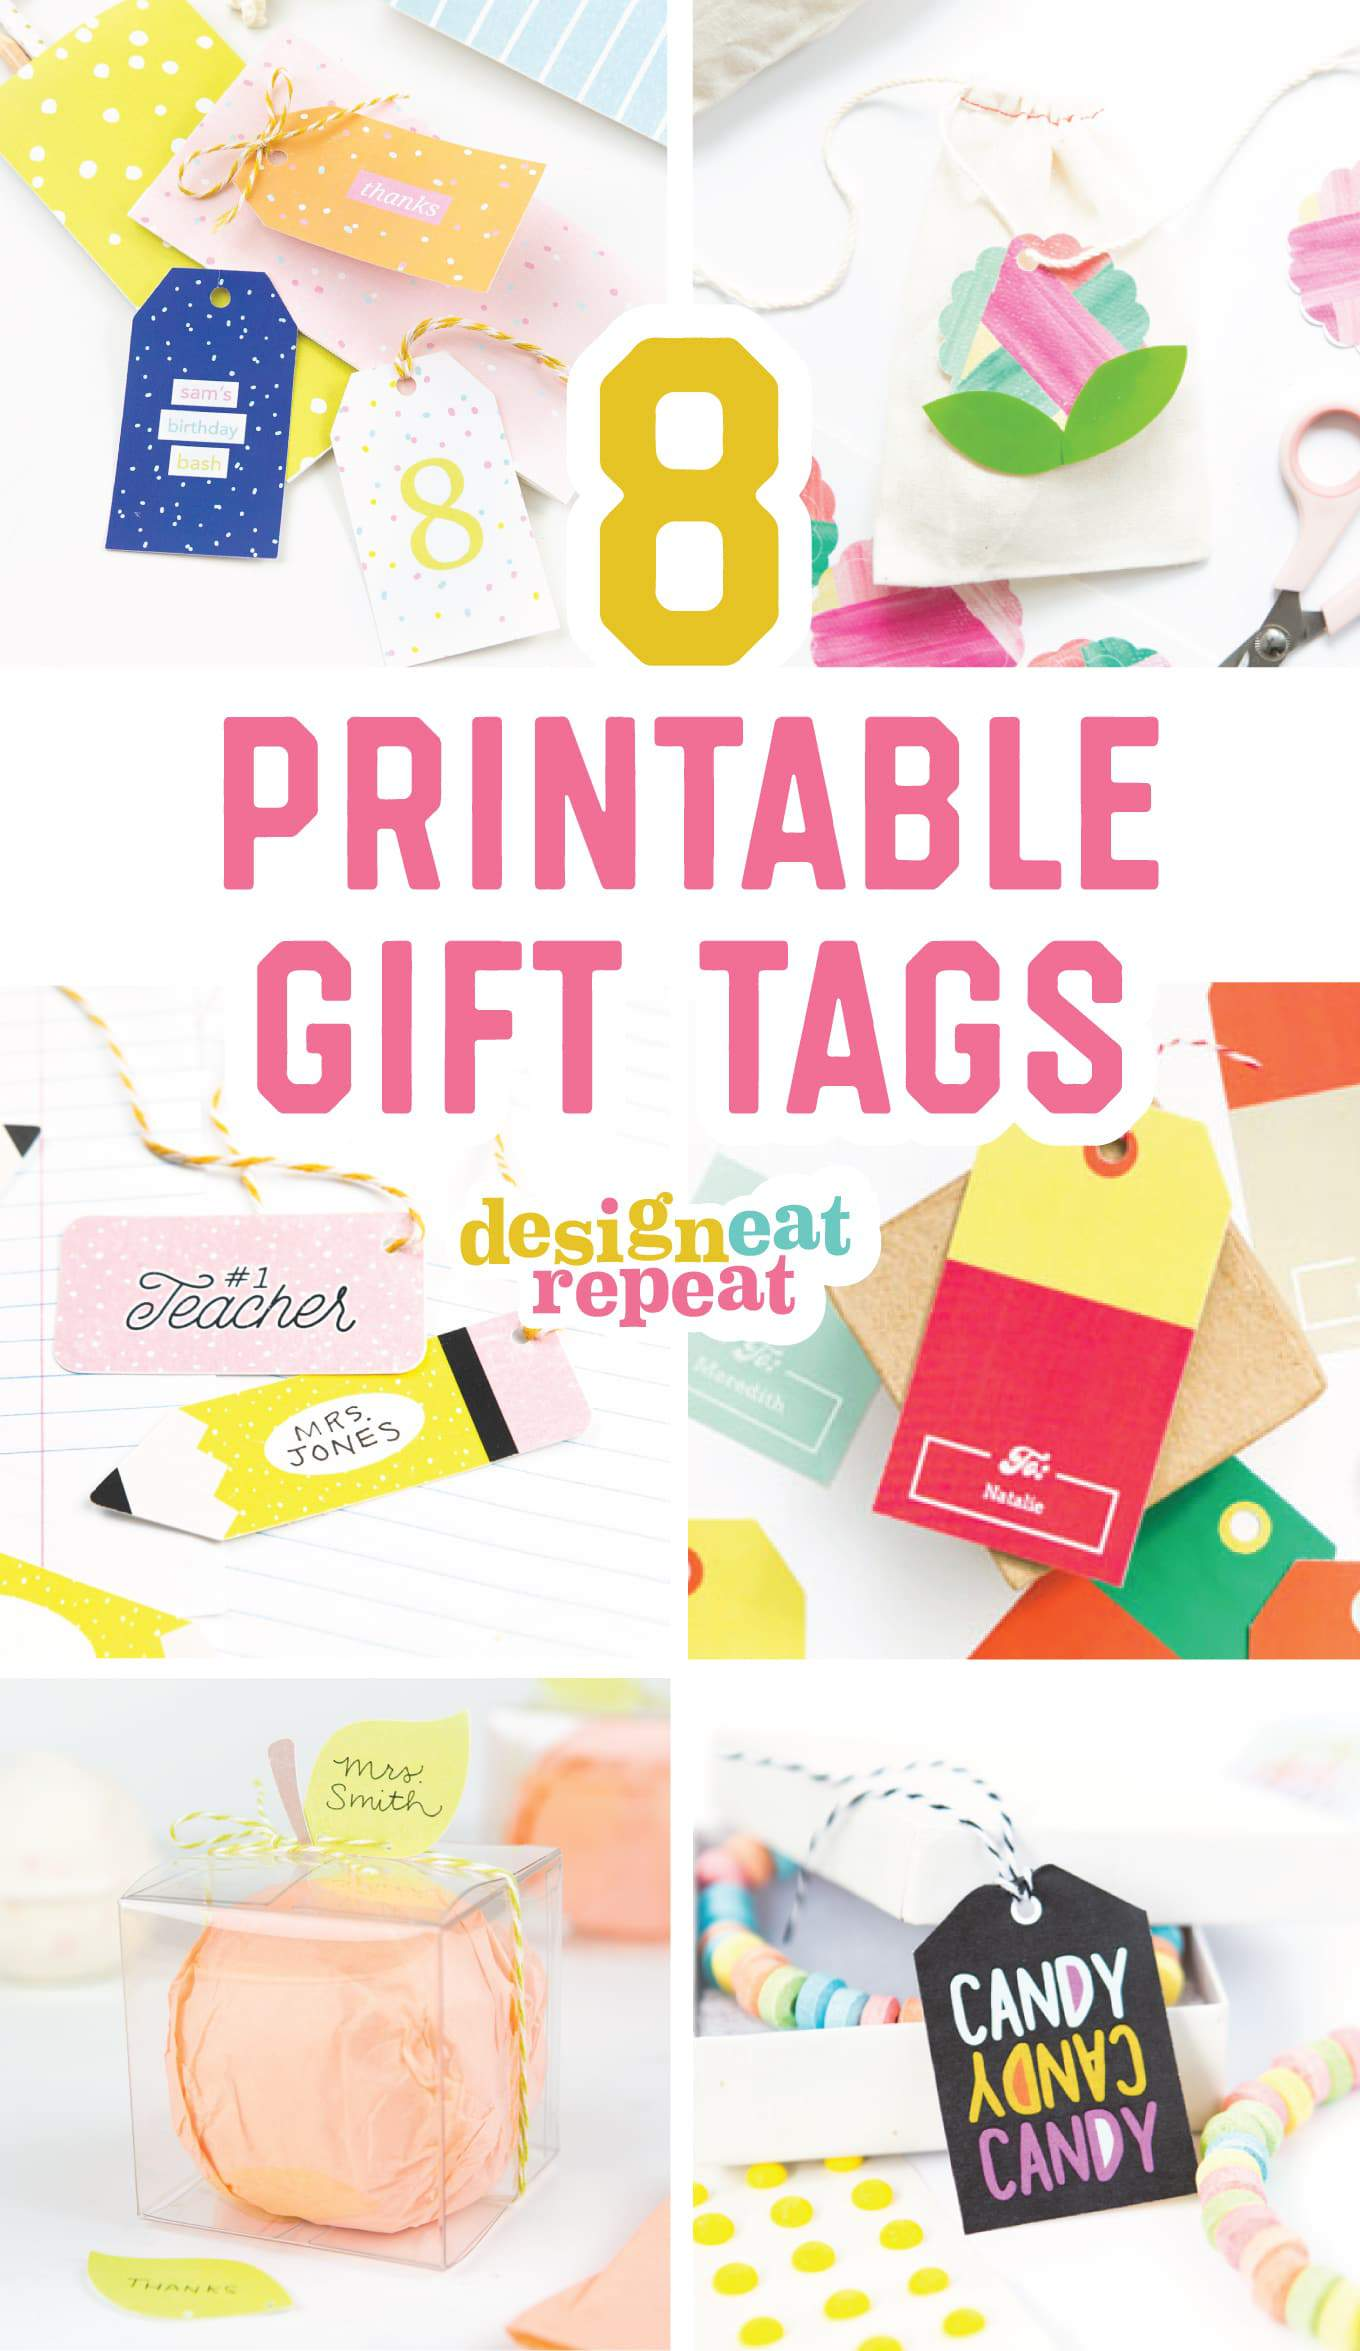 8 colorful free printable gift tags for any occasion whether youre putting together last minute party favors birthday gifts or negle Gallery